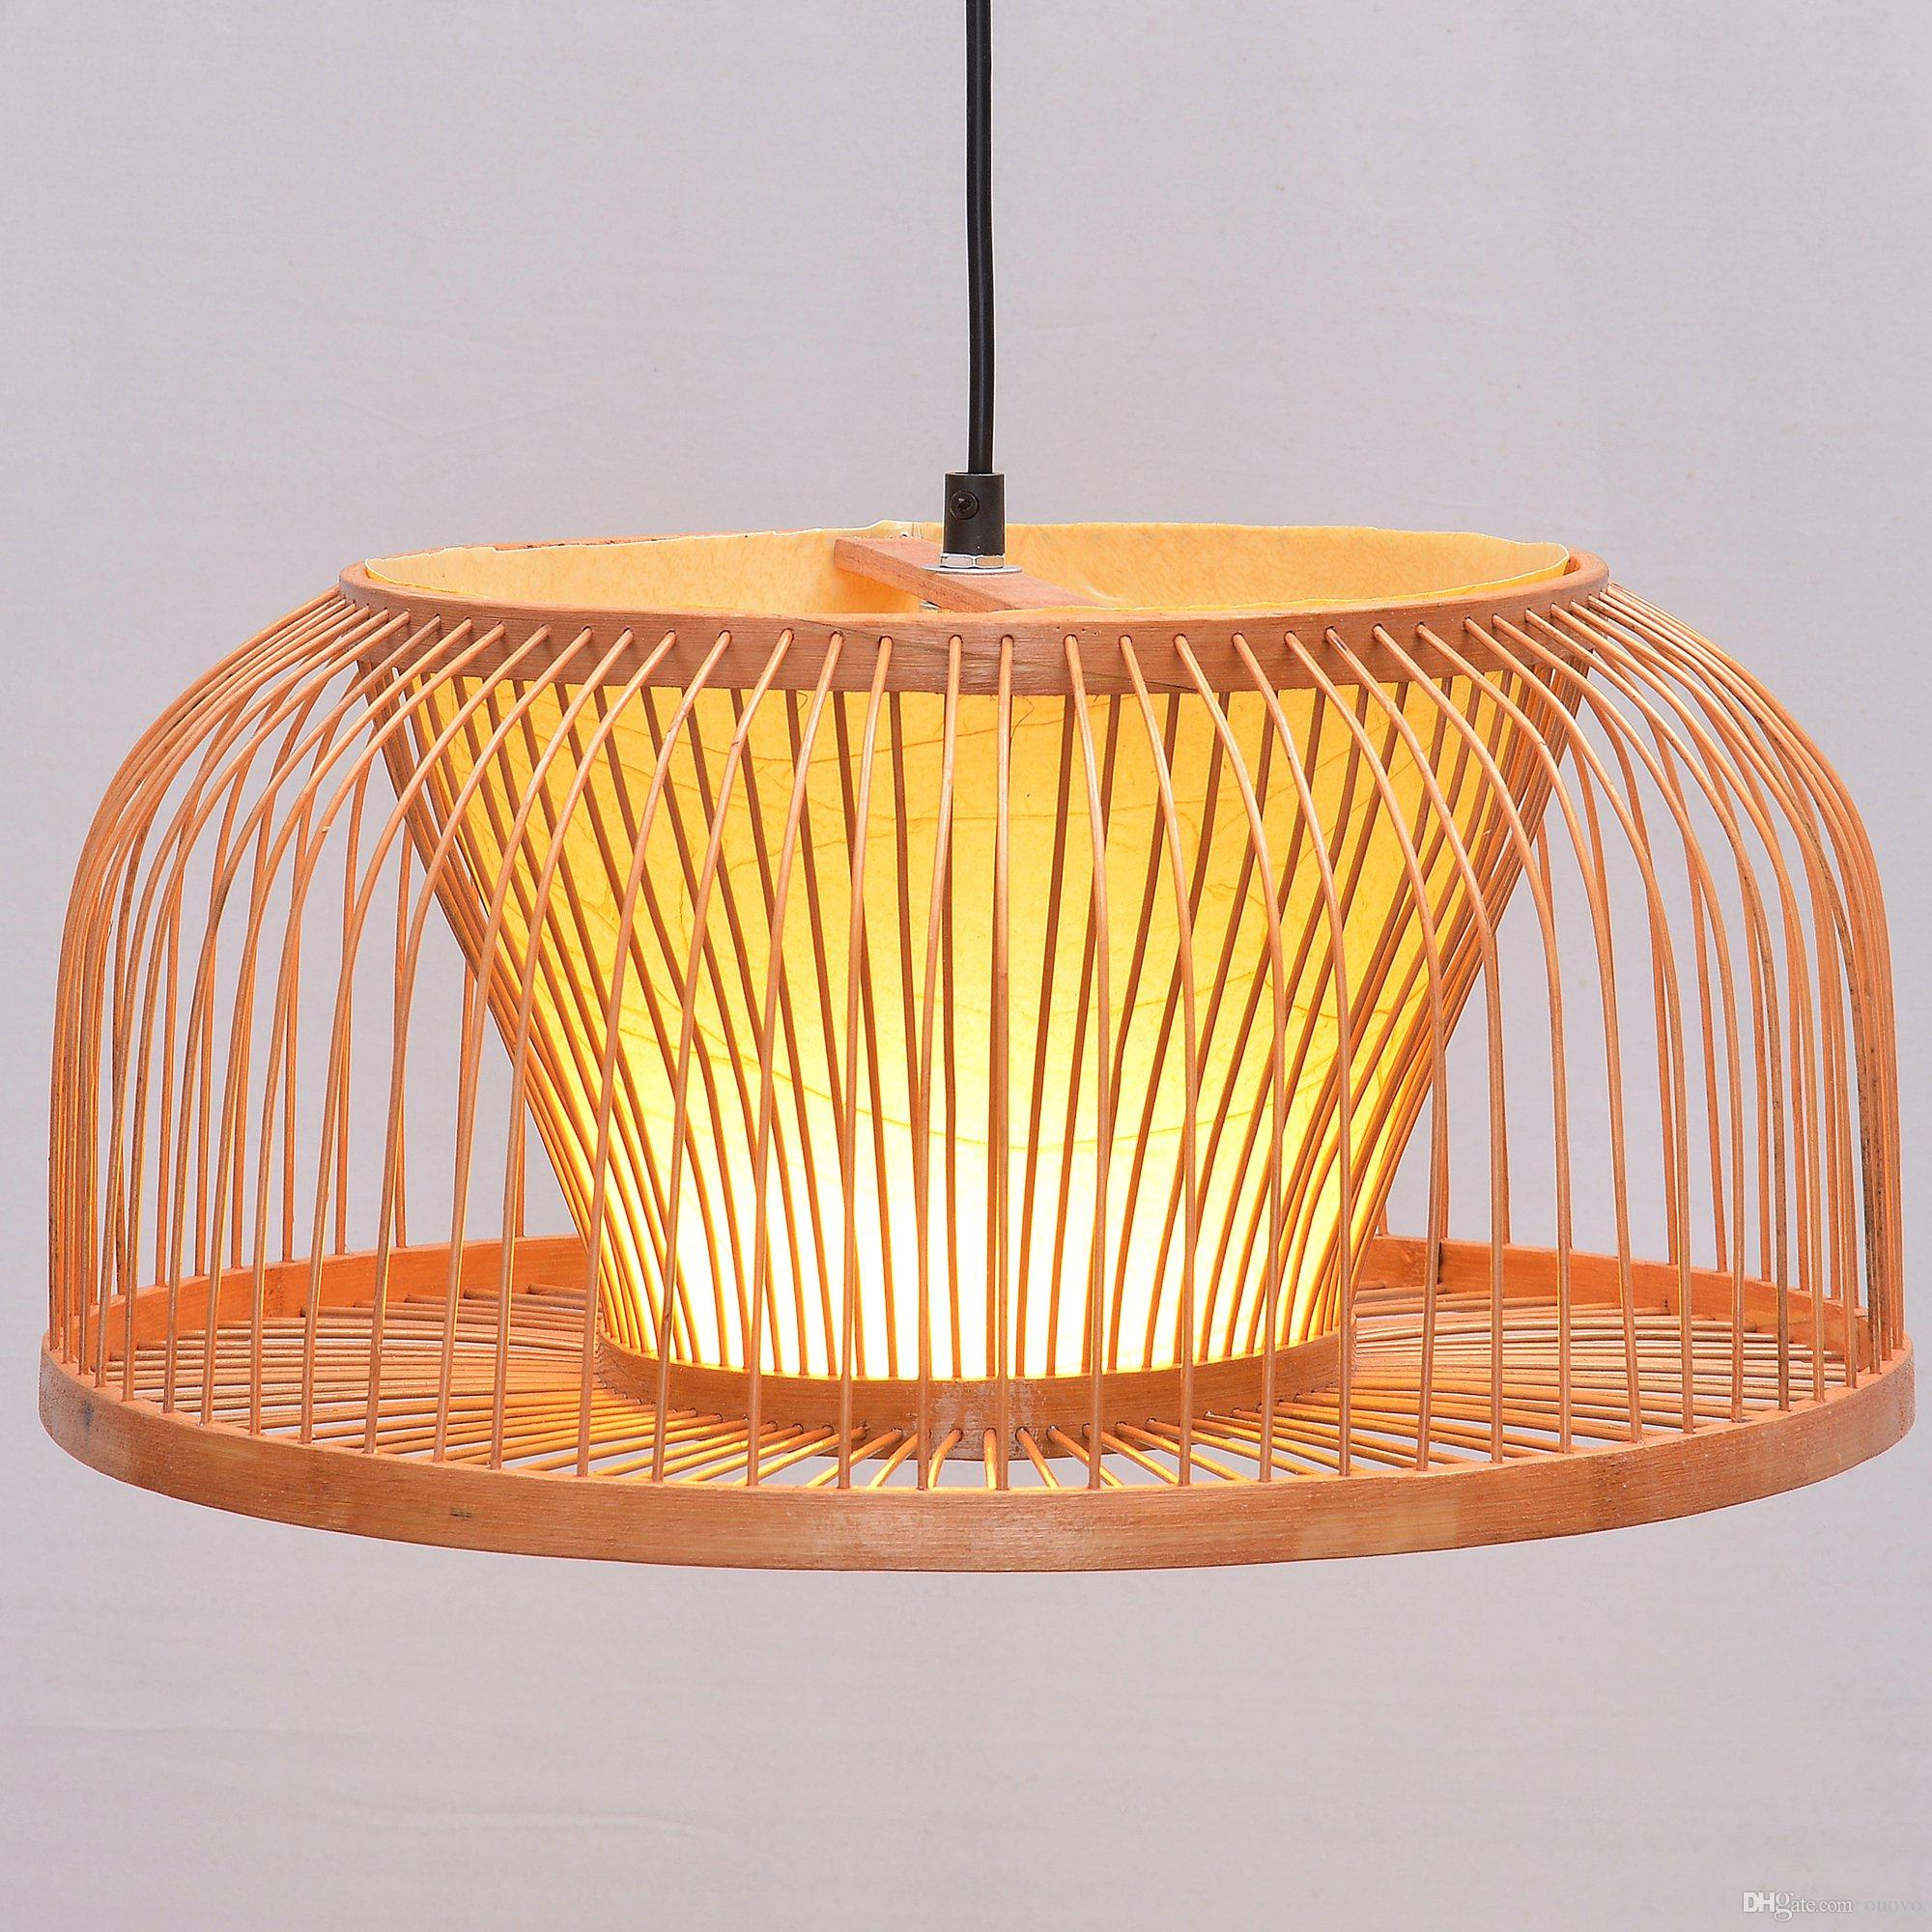 South Asian Bamboo Dining Room Ceiling Pendant Lamp Hand Made